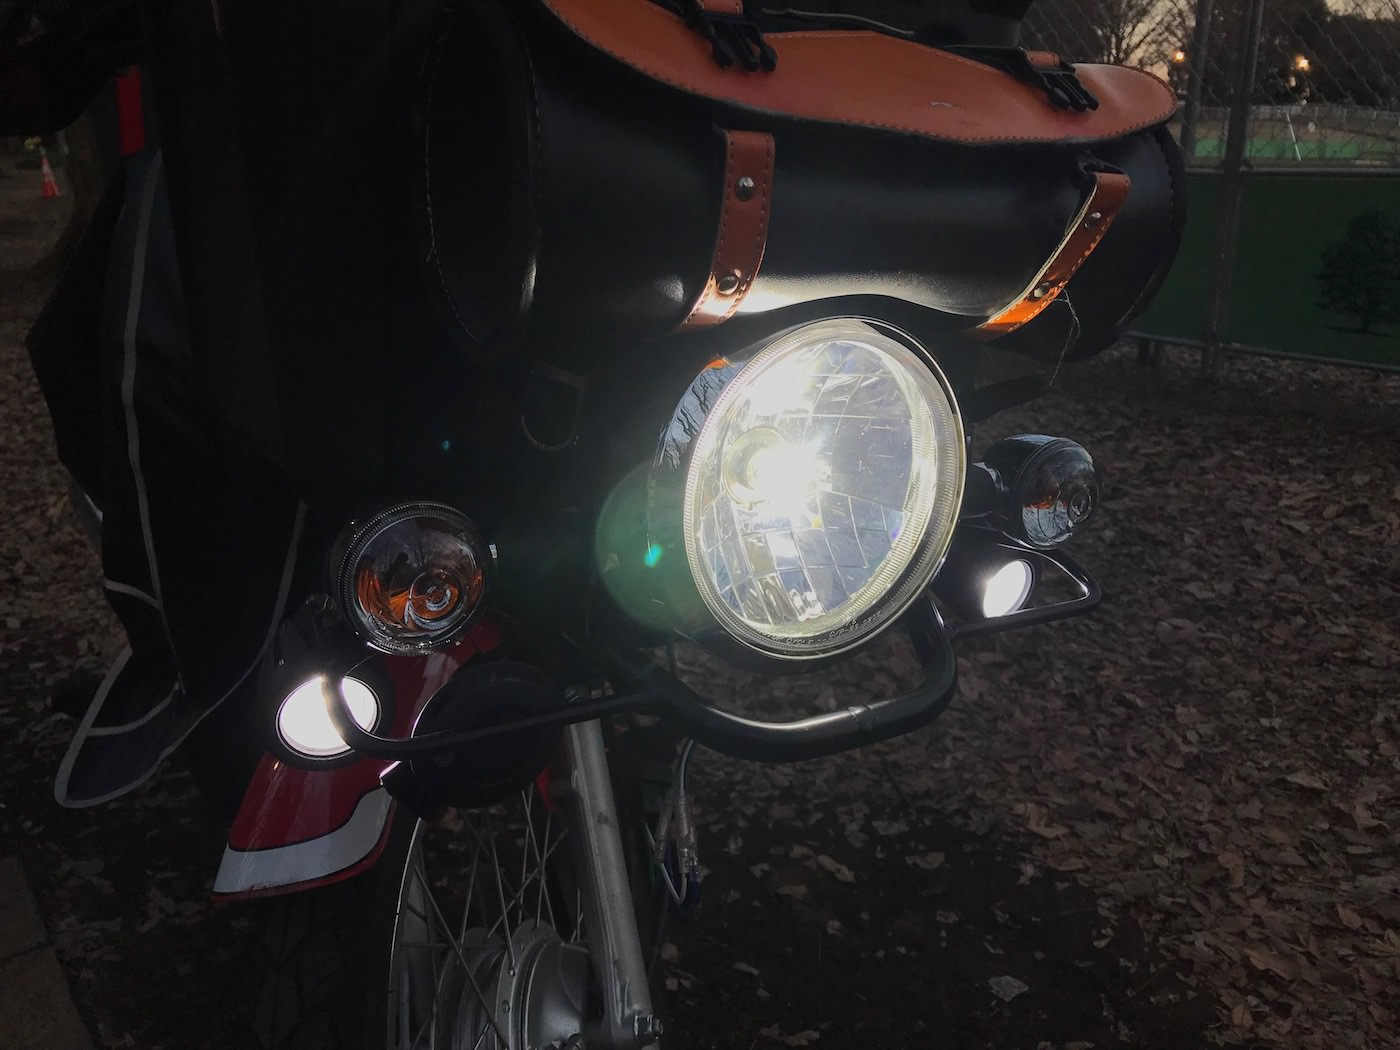 Crosscub led light 00014